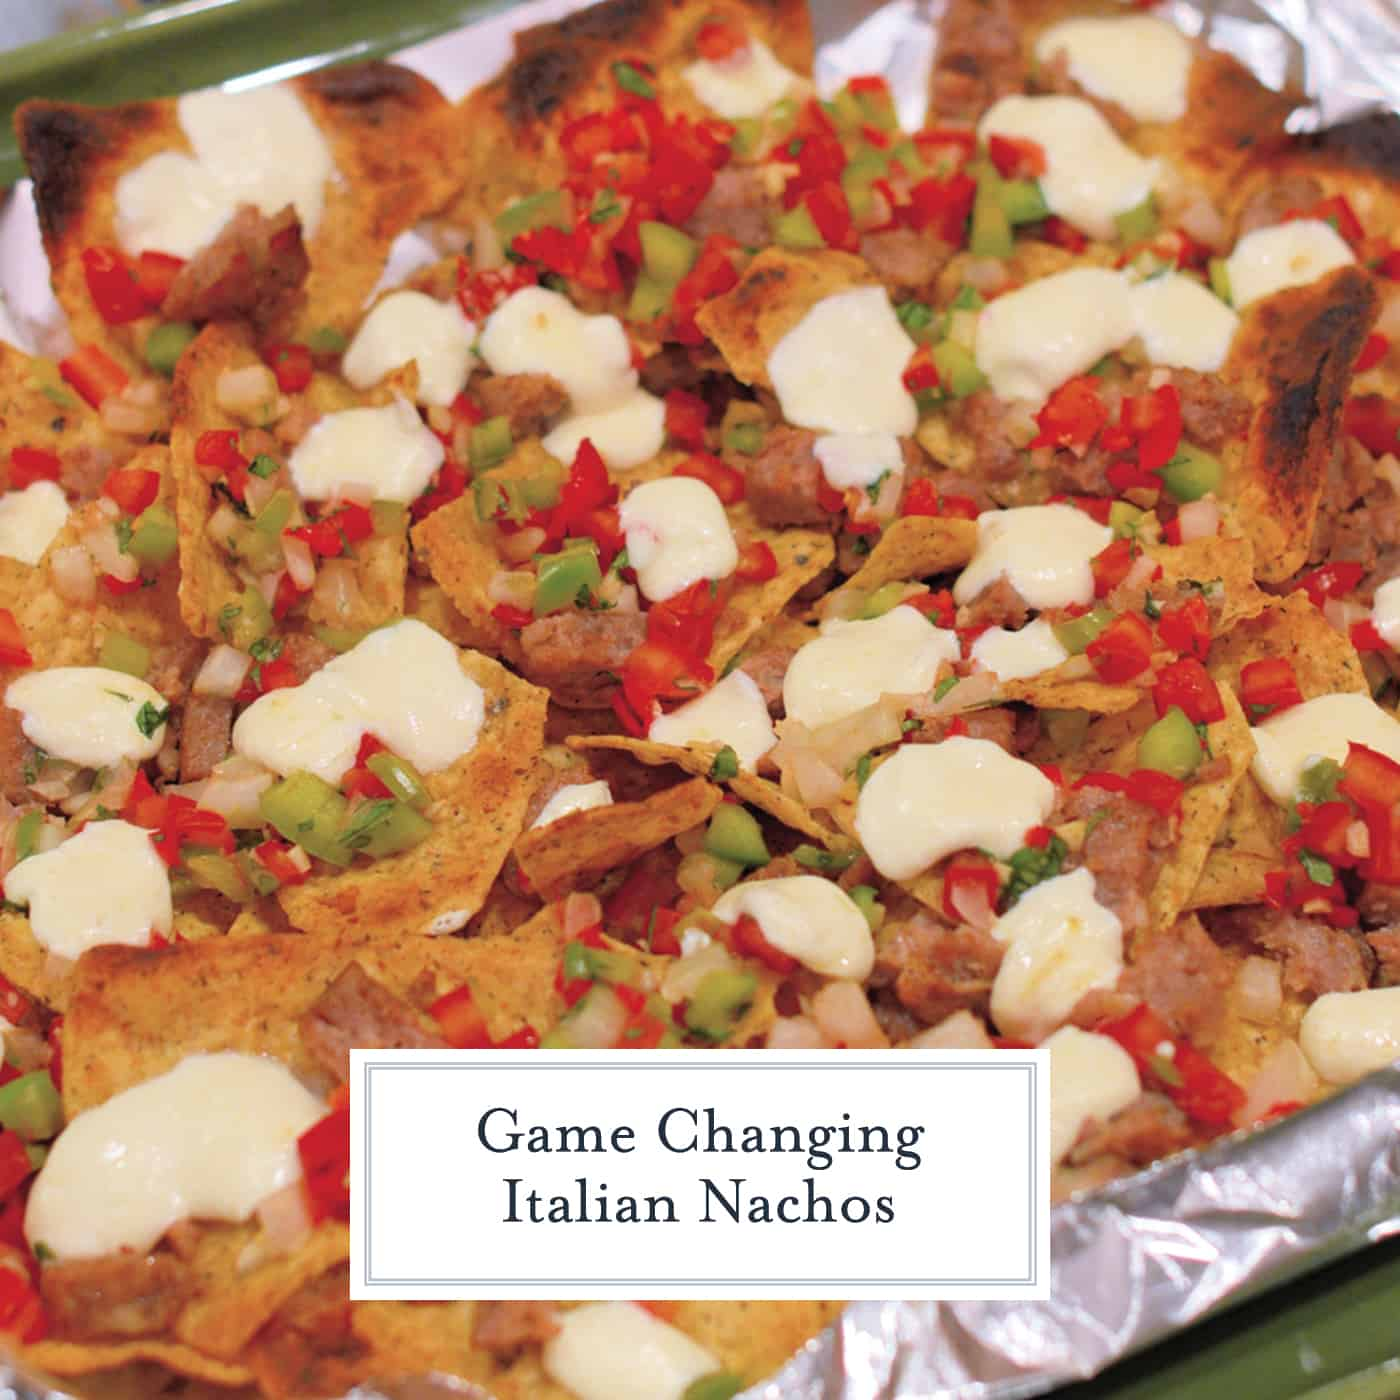 Italian Nachos are a new twist on an old favorite.Crunchy, spicy, and loaded with toppings, these are about as addictive as they come. #italiannachos #nachos www.savoryexperiments.com